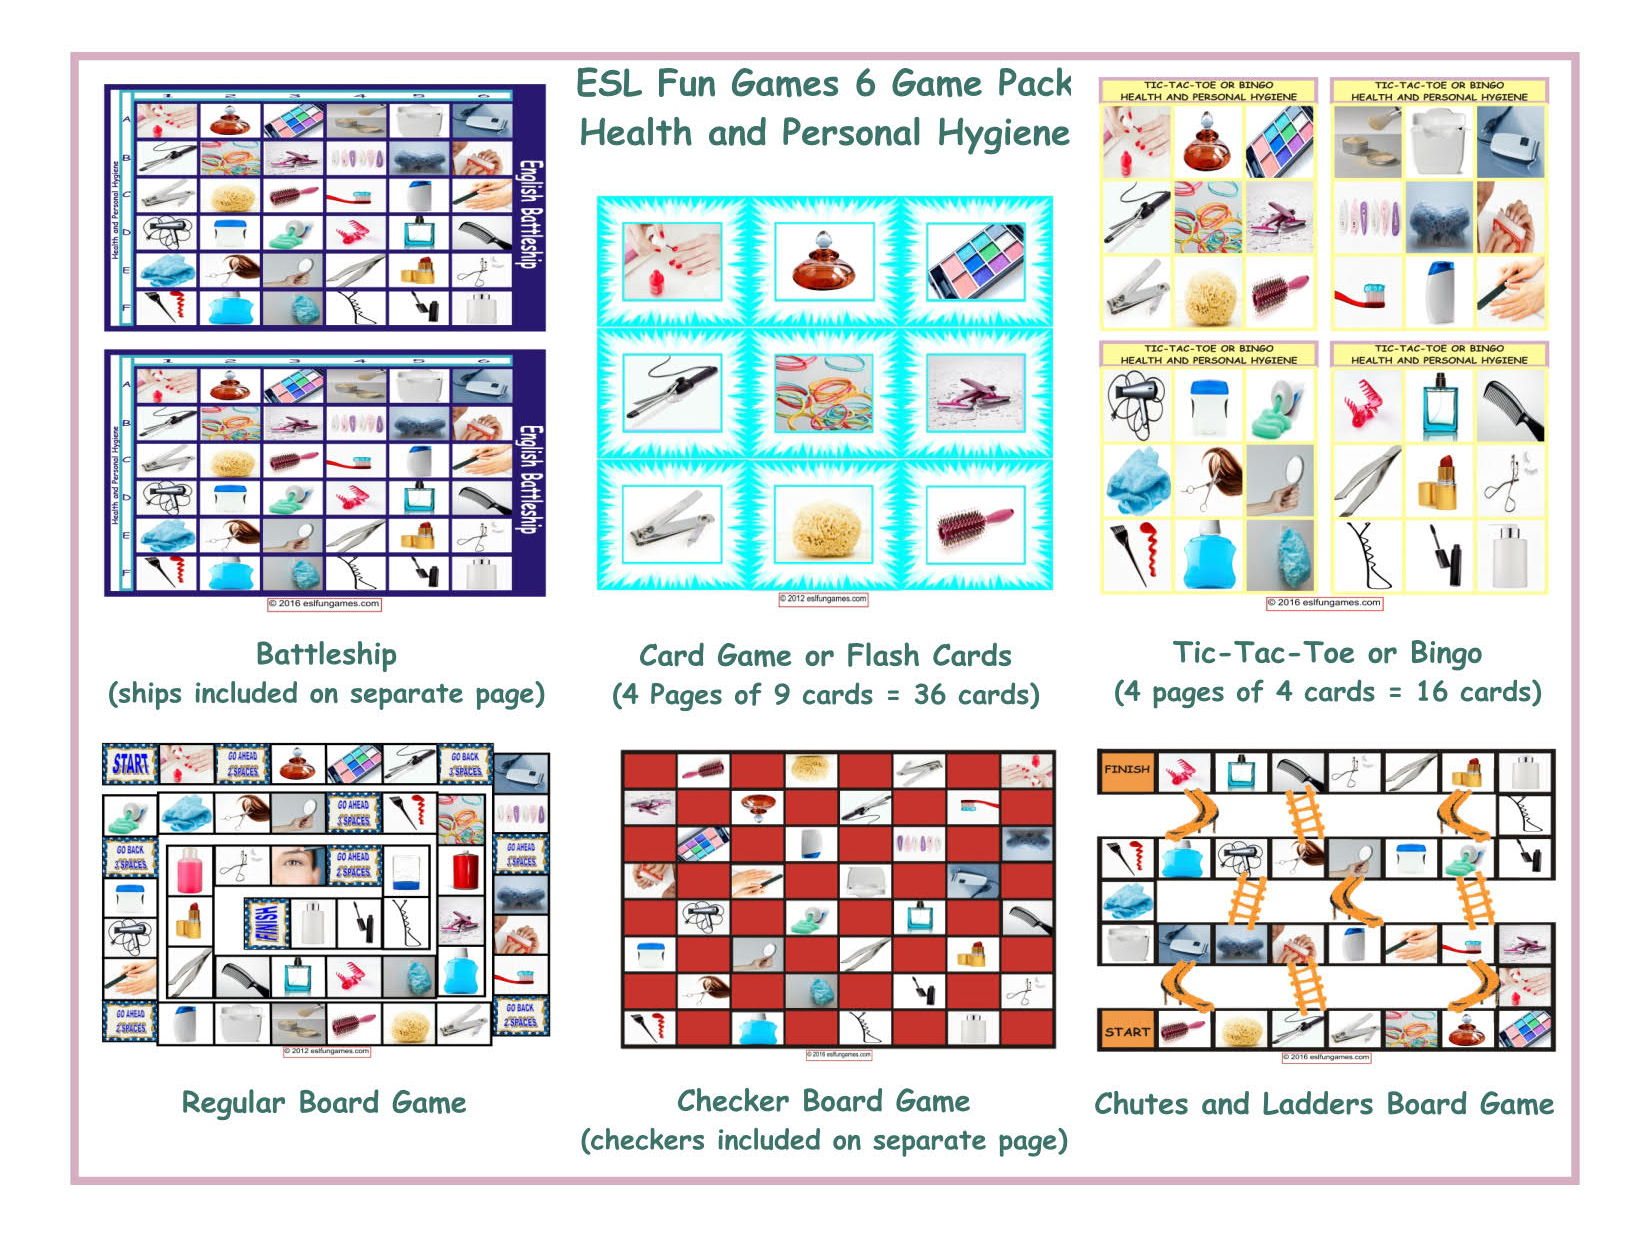 Health And Personal Hygiene 6 Board Game Bundle By Eslfungames